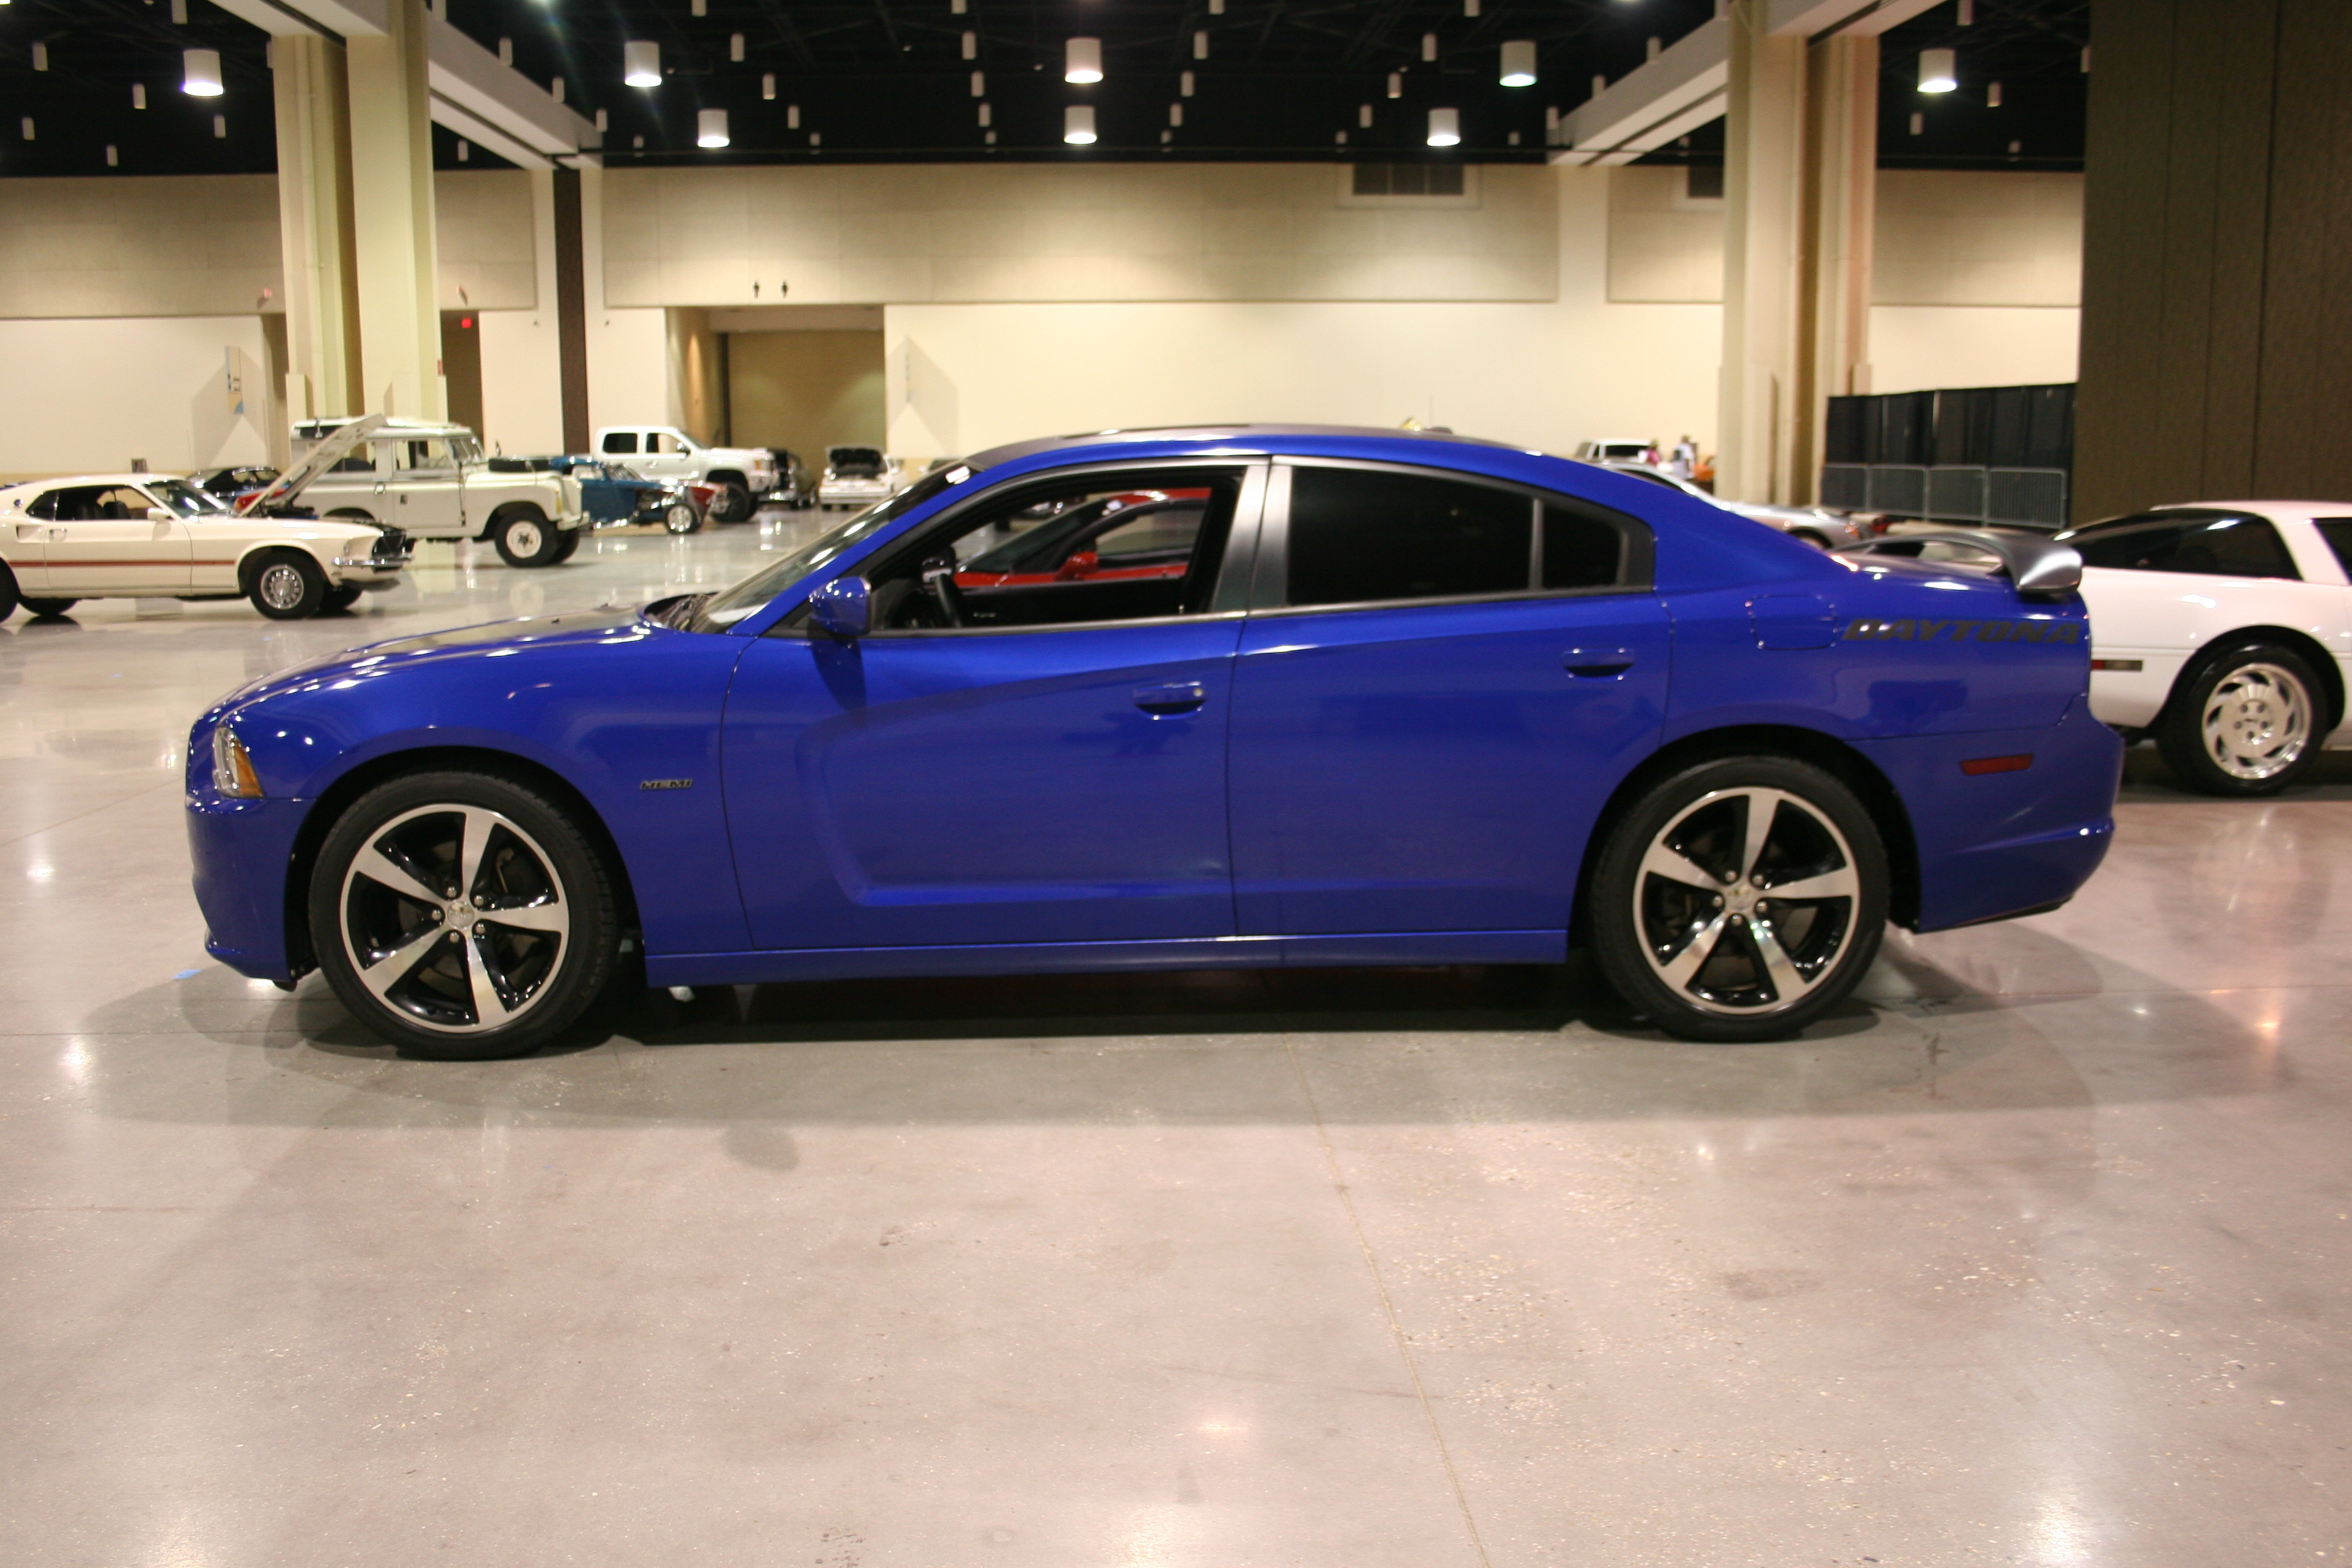 3rd Image of a 2013 DODGE CHARGER R/T